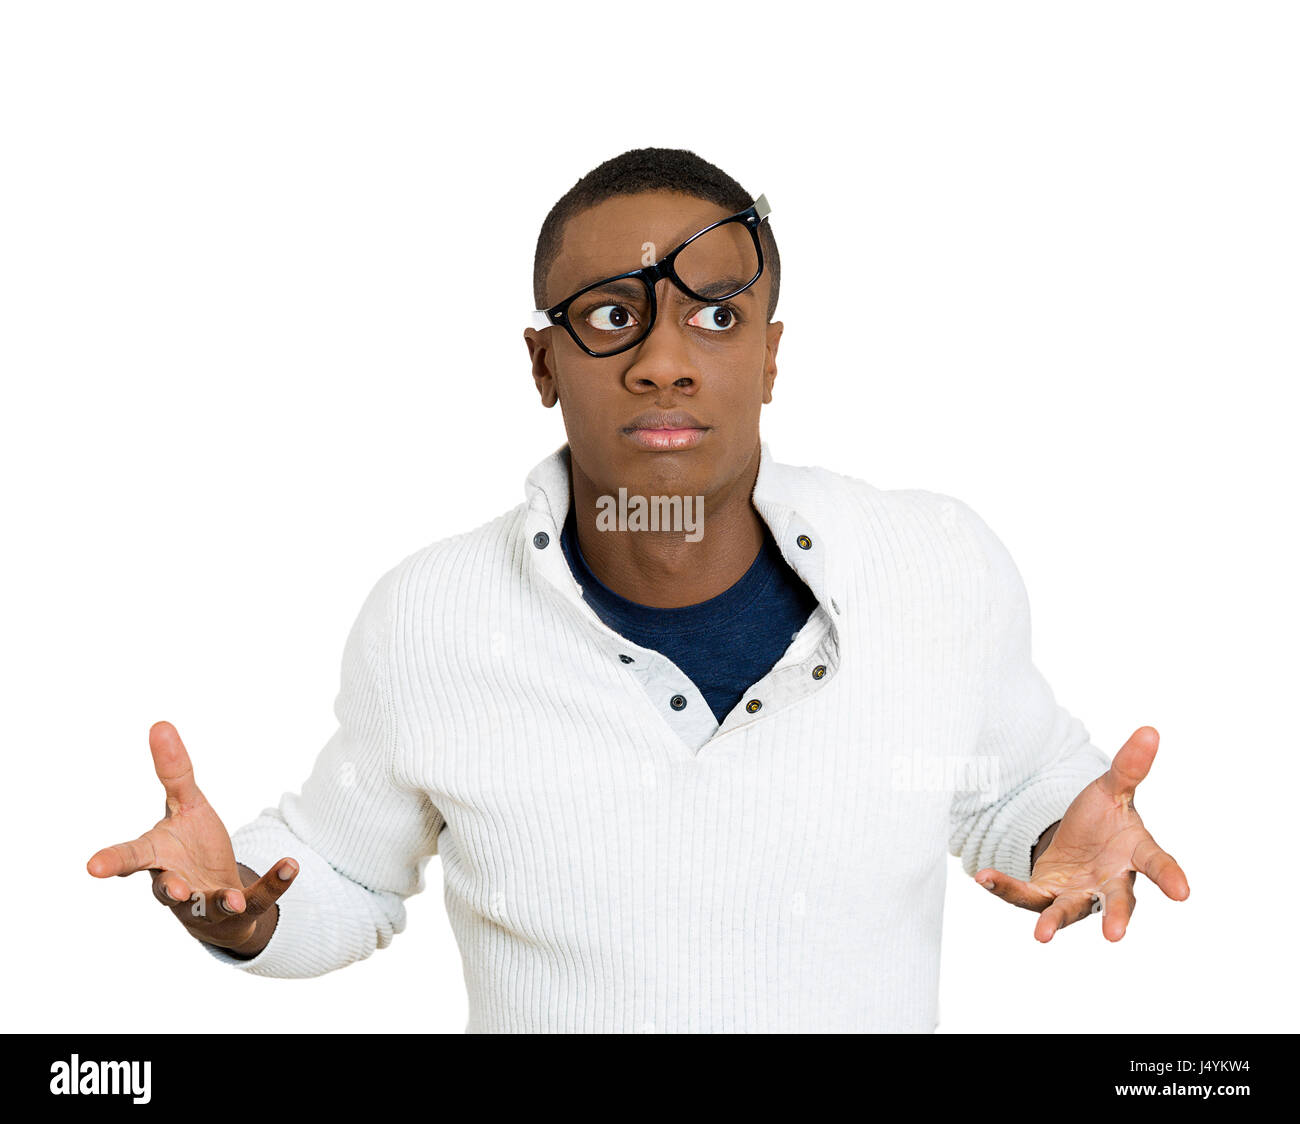 Closeup portrait, dazed, nerd young man with big glasses messed on face, open mouth, embarrassed, failed excuse - Stock Image